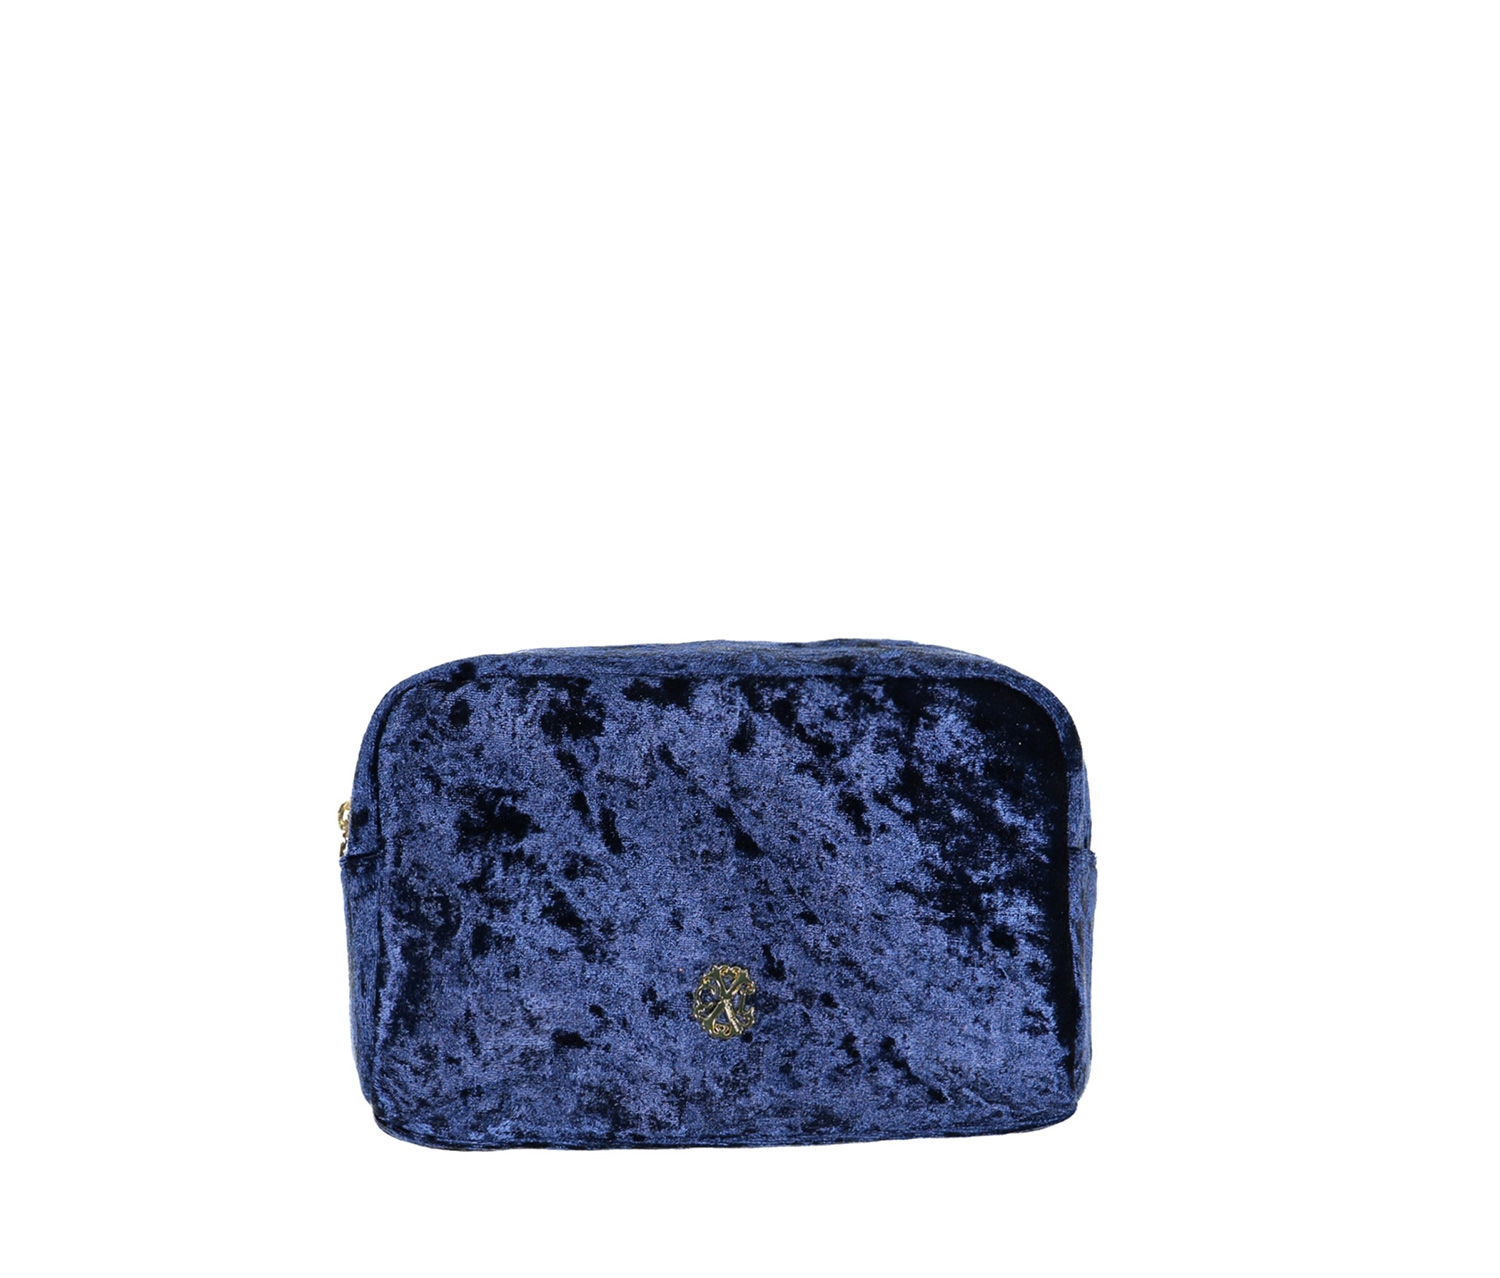 Christian Lacroix Crushed Velvet Voyager Cosmetic Kit, Navy/Marine